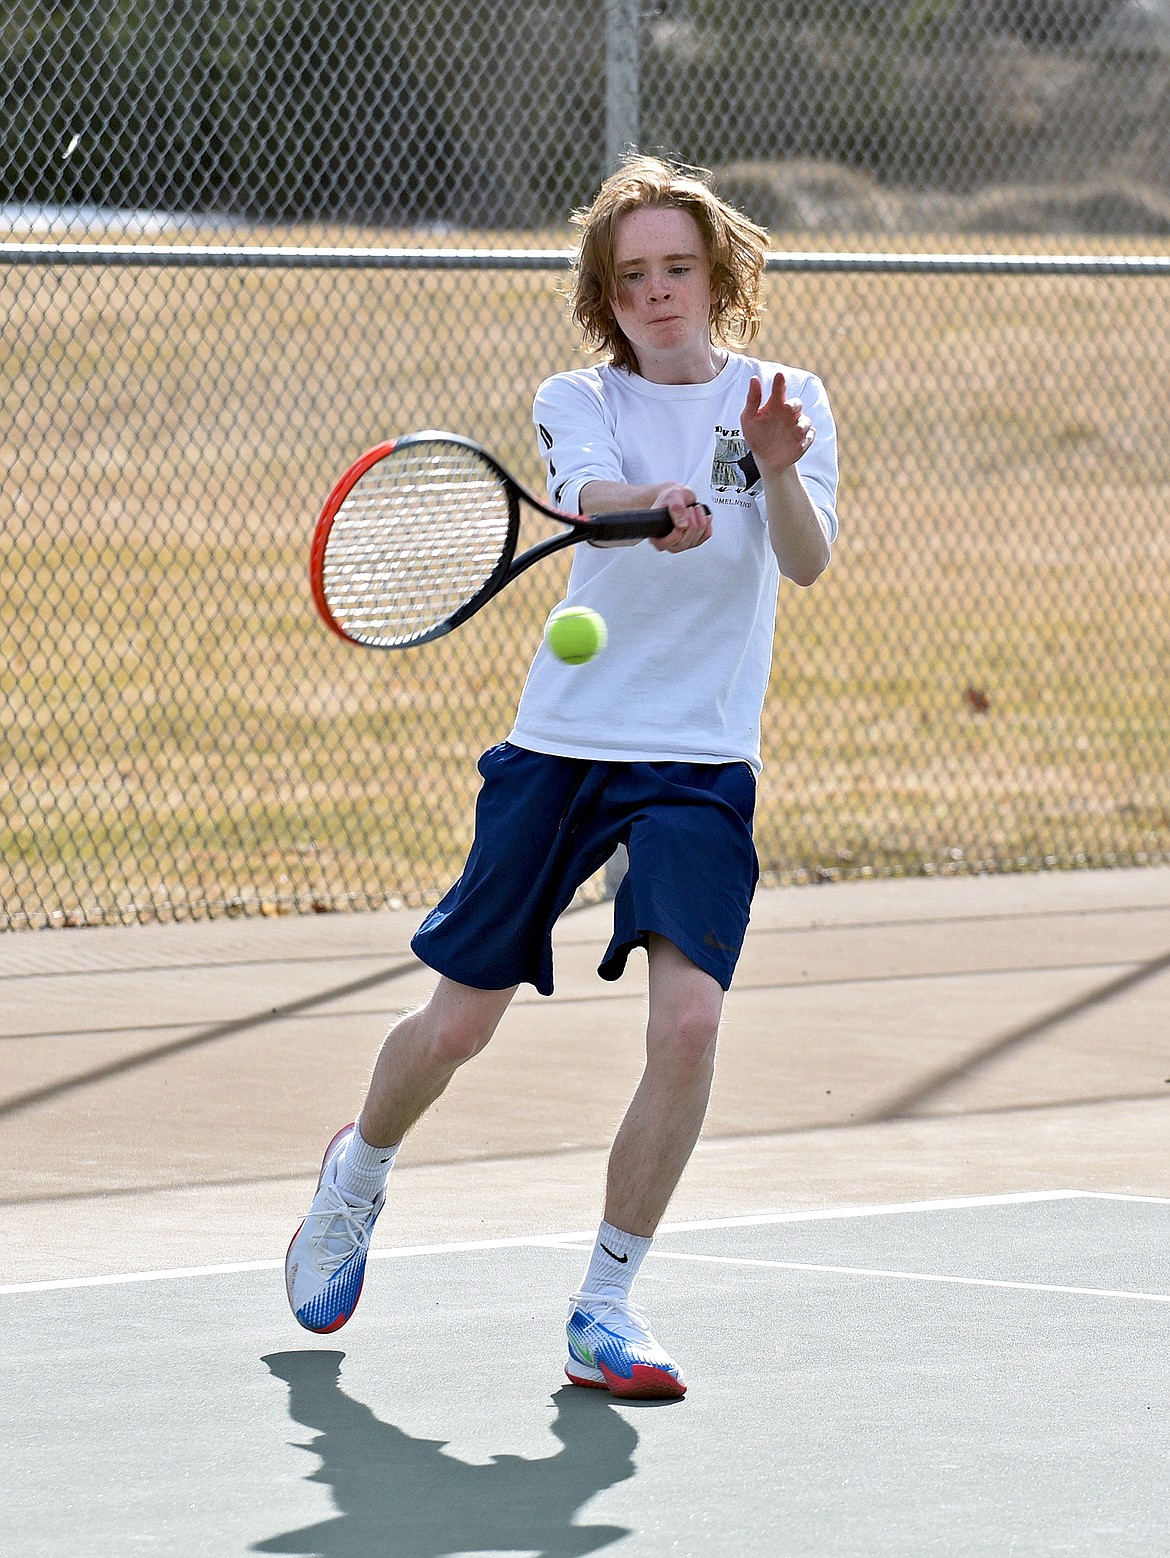 Whitefish's Connor Kelly plays against his teammates during the boys high school tennis practice on Thursday. (Whitney England/Whitefish Pilot)